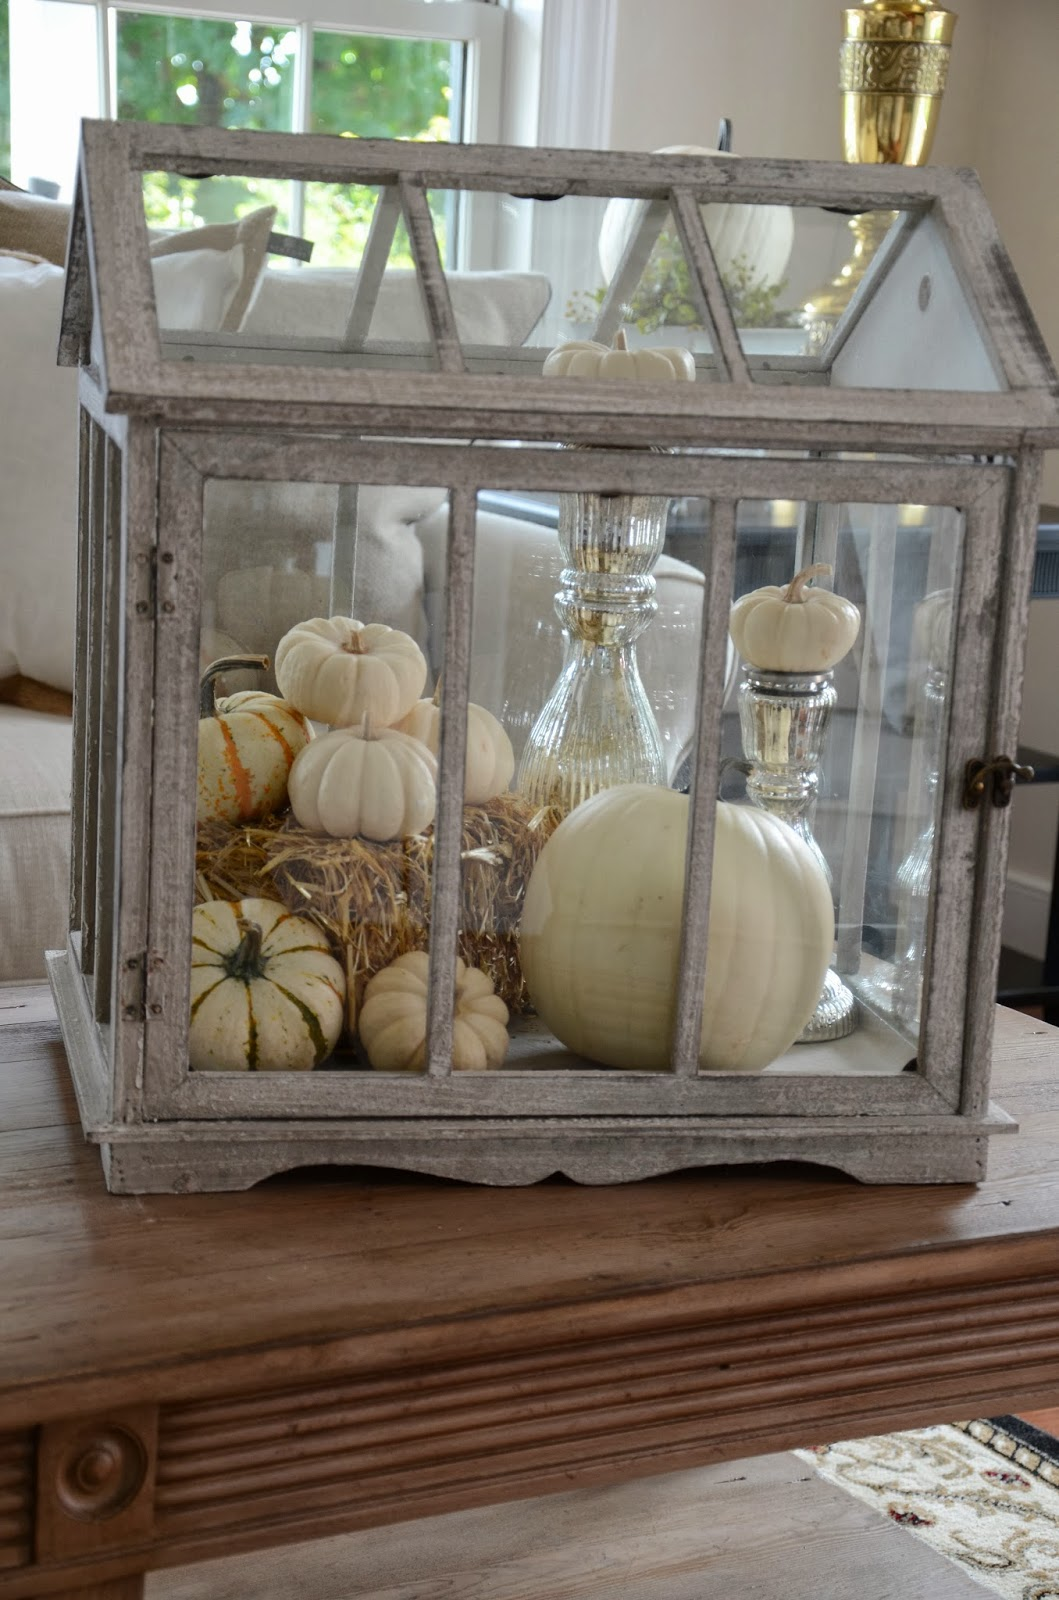 FALL HOME TOUR AND A $1 500 GIVEAWAY